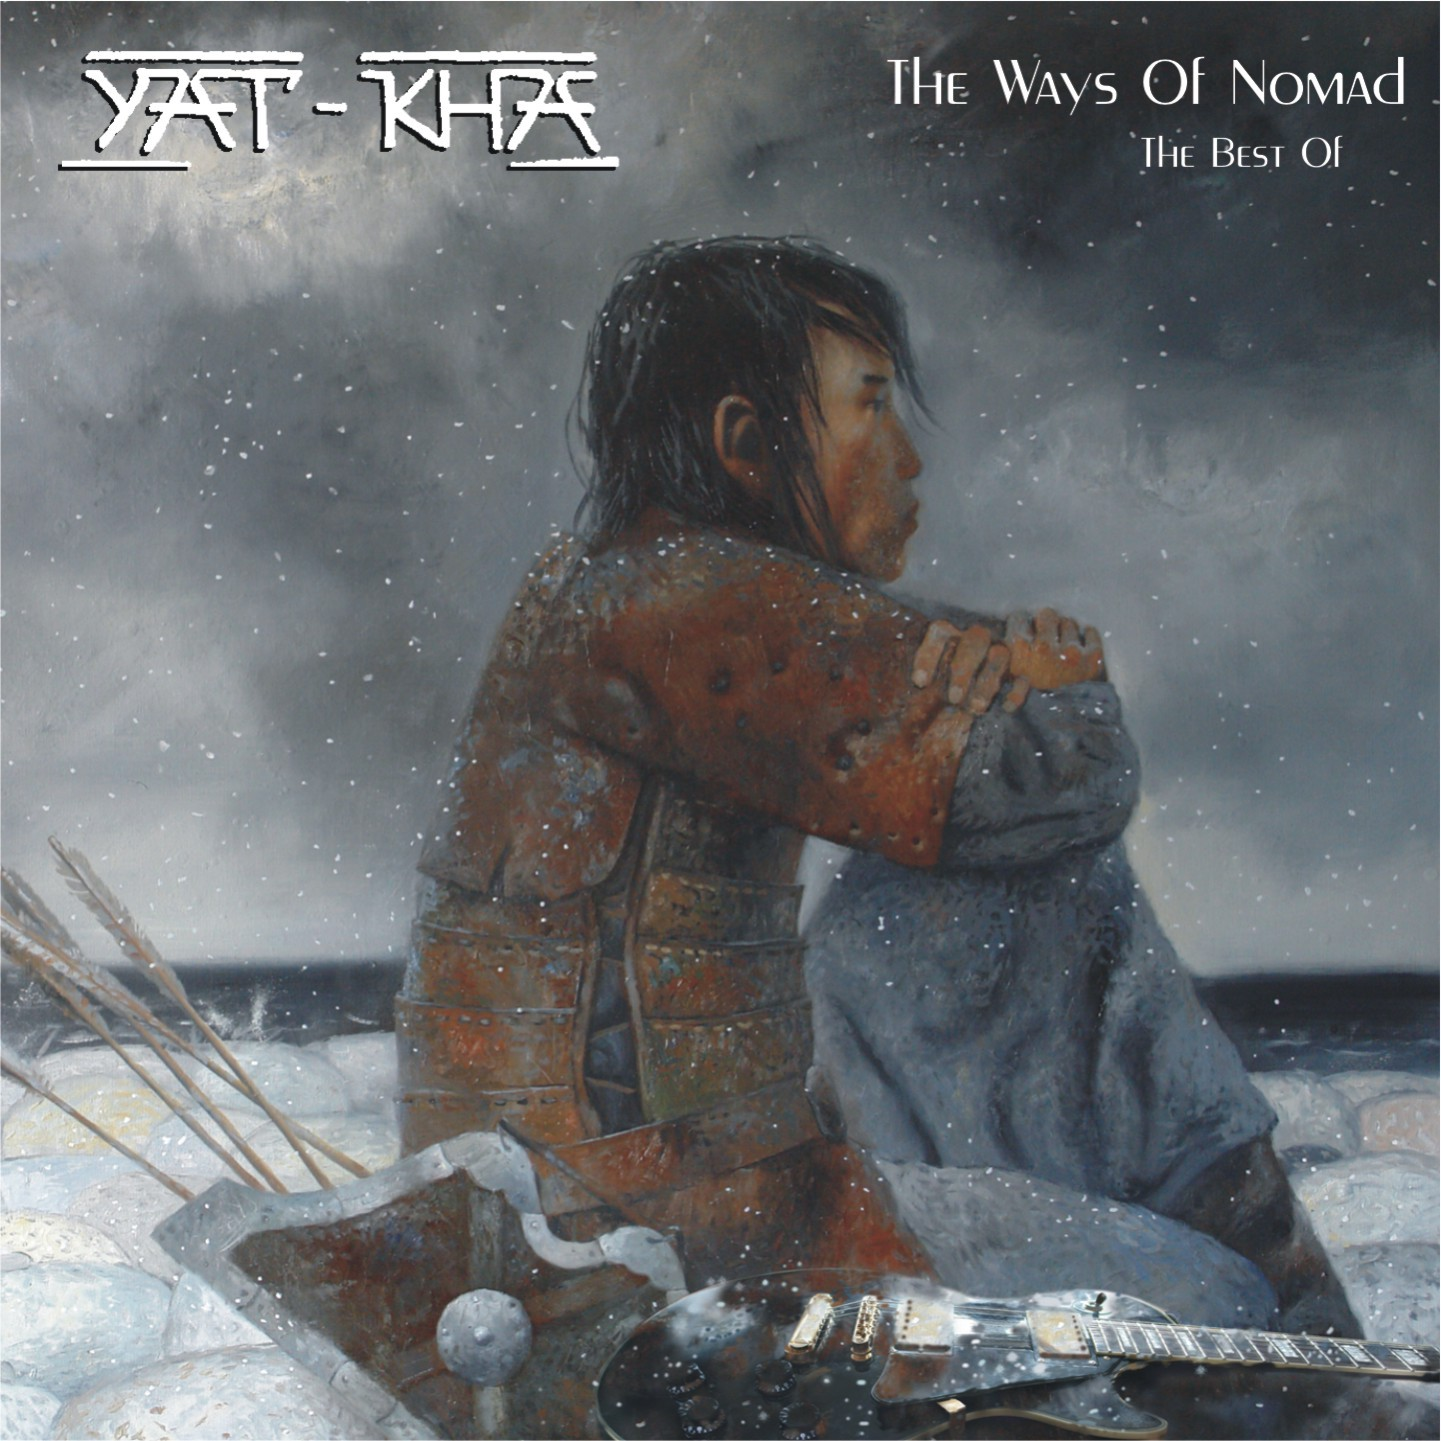 Yat-Kha The Ways of Nomad The Best Of